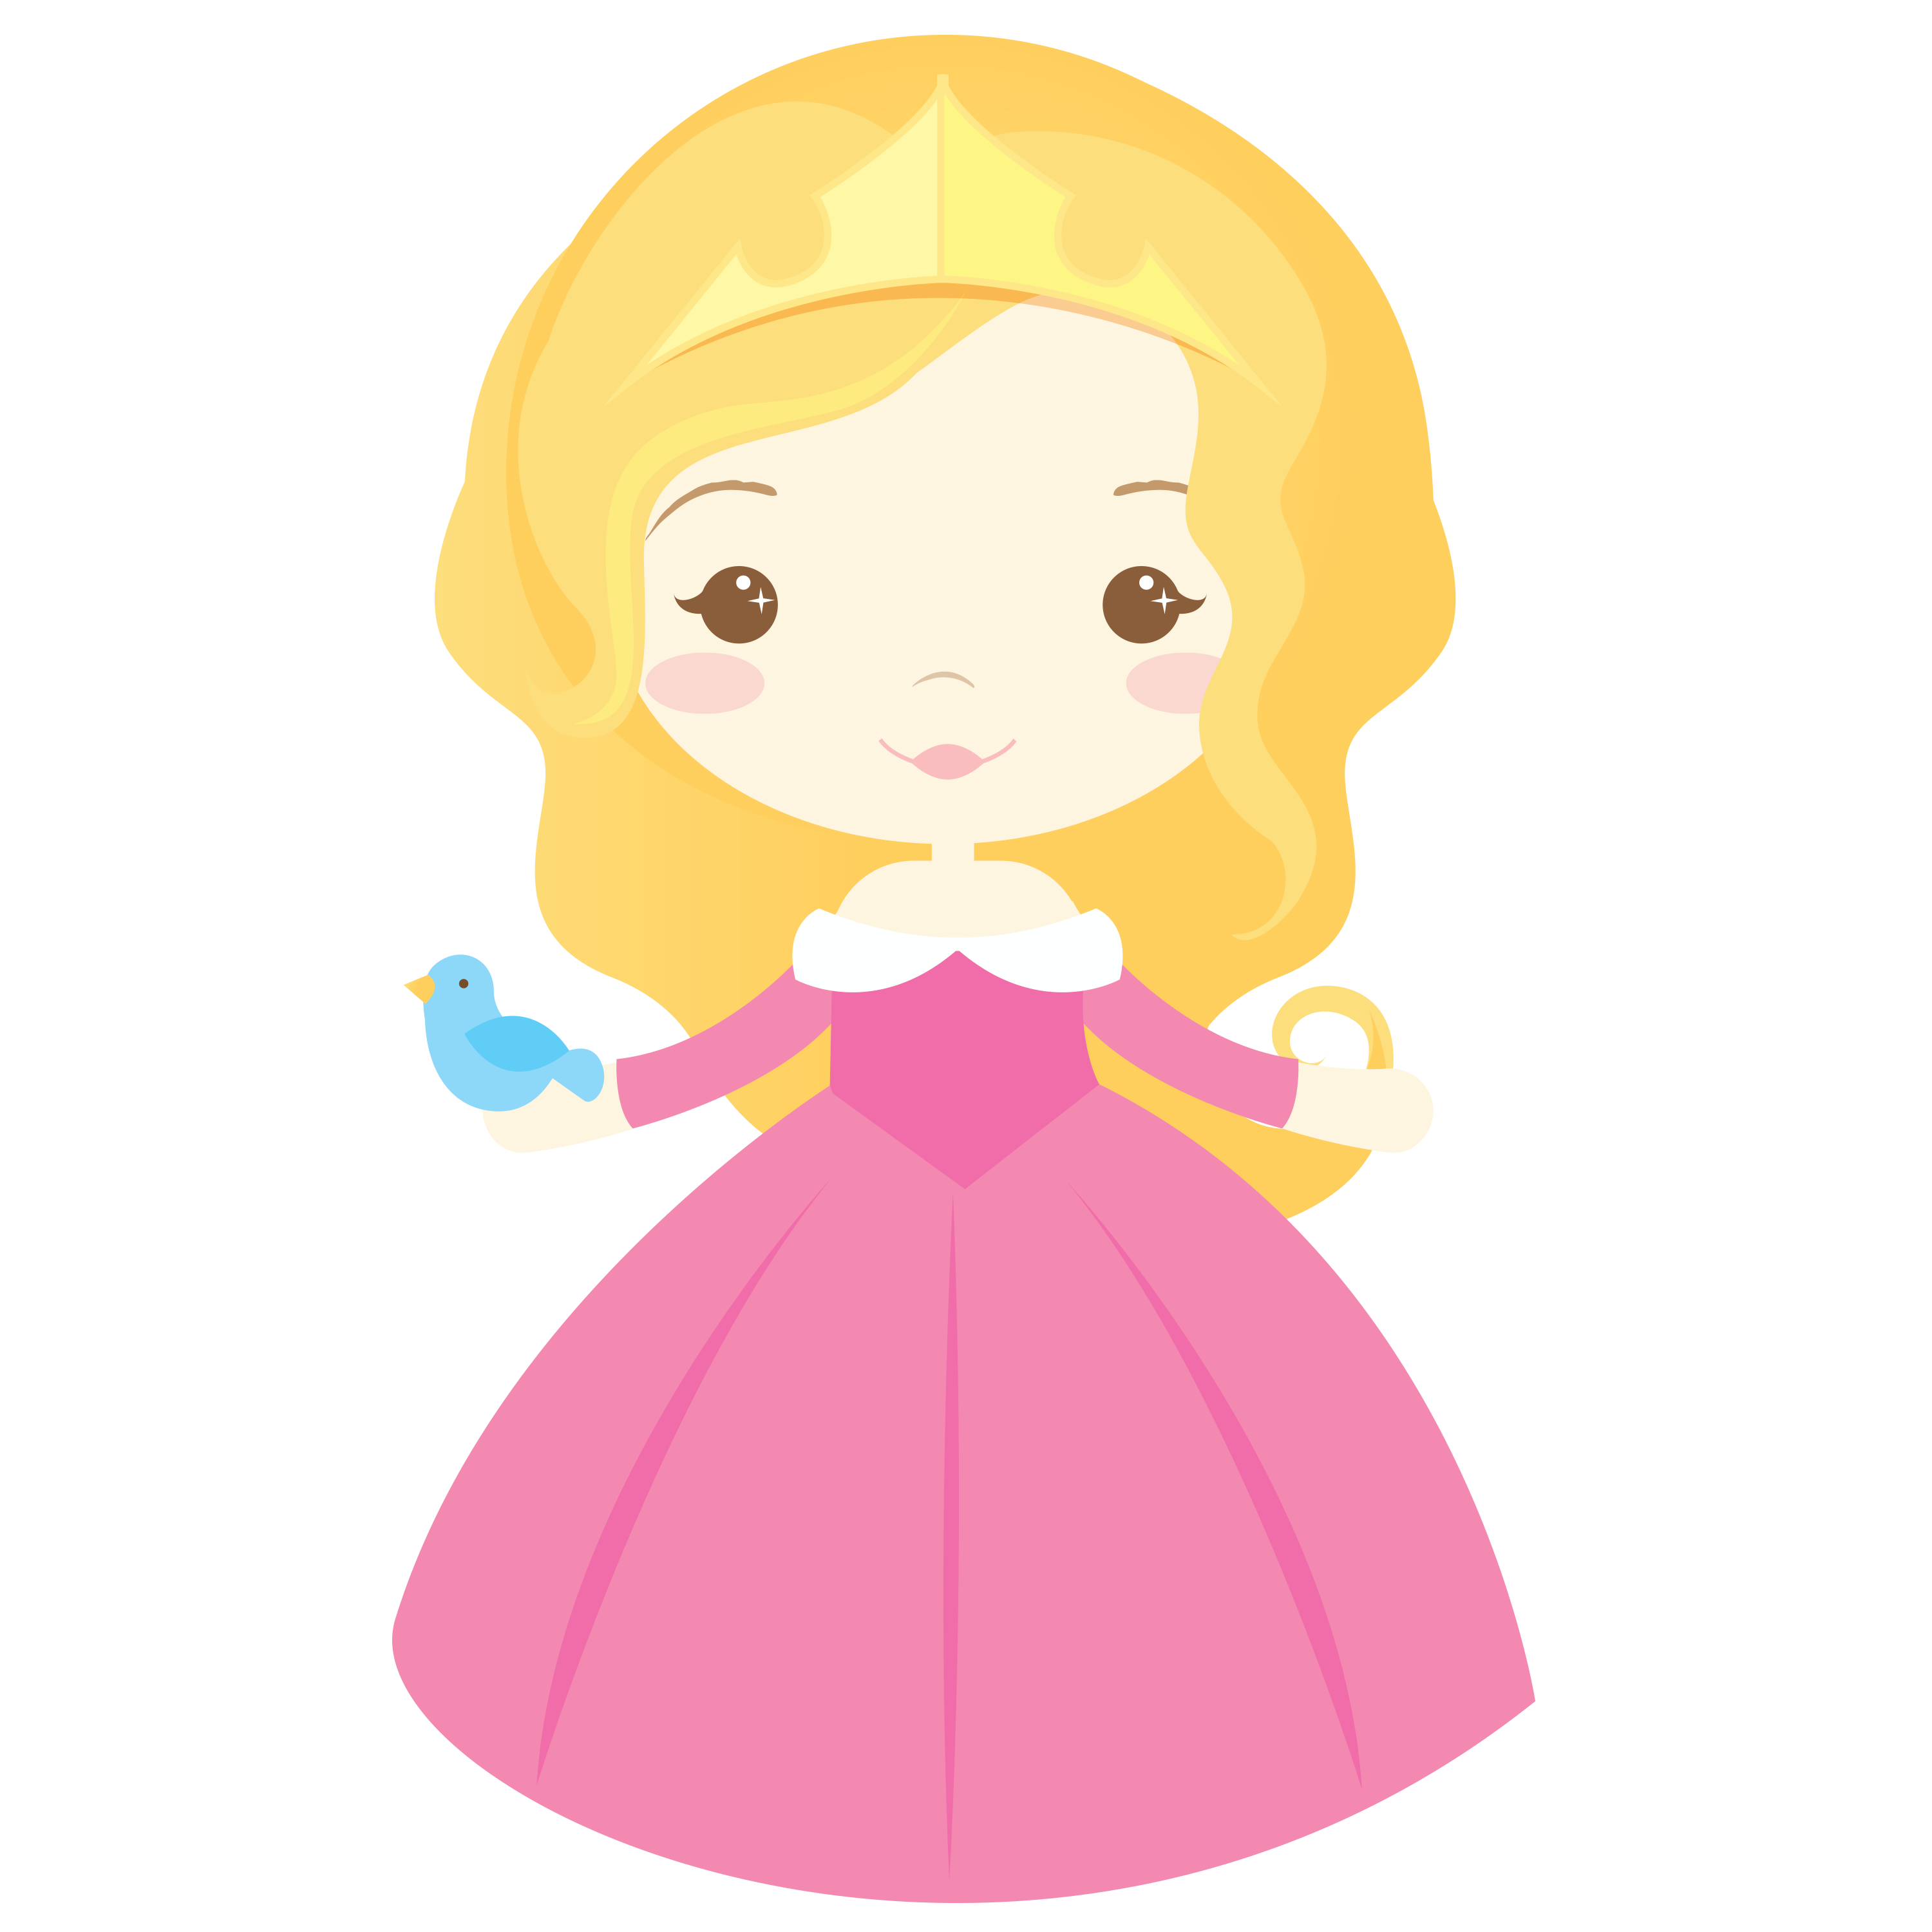 Auroras crown clipart picture library library Collection of 14 free Auroras clipart pretty princess. Download on ... picture library library